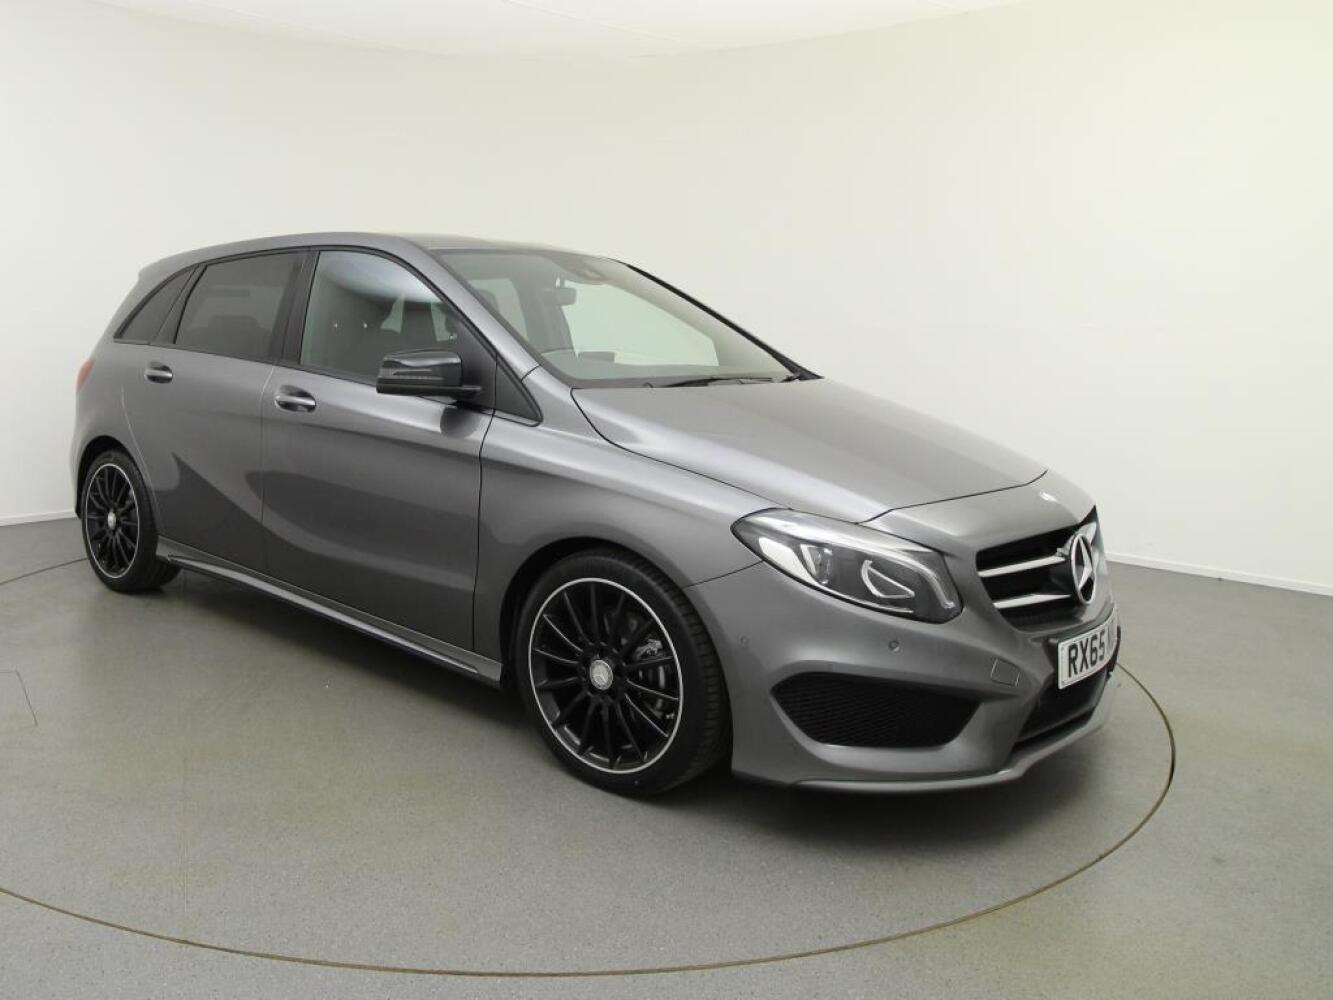 used mercedes benz b class b180 cdi amg line premium 5dr diesel hatchback for sale vertu. Black Bedroom Furniture Sets. Home Design Ideas